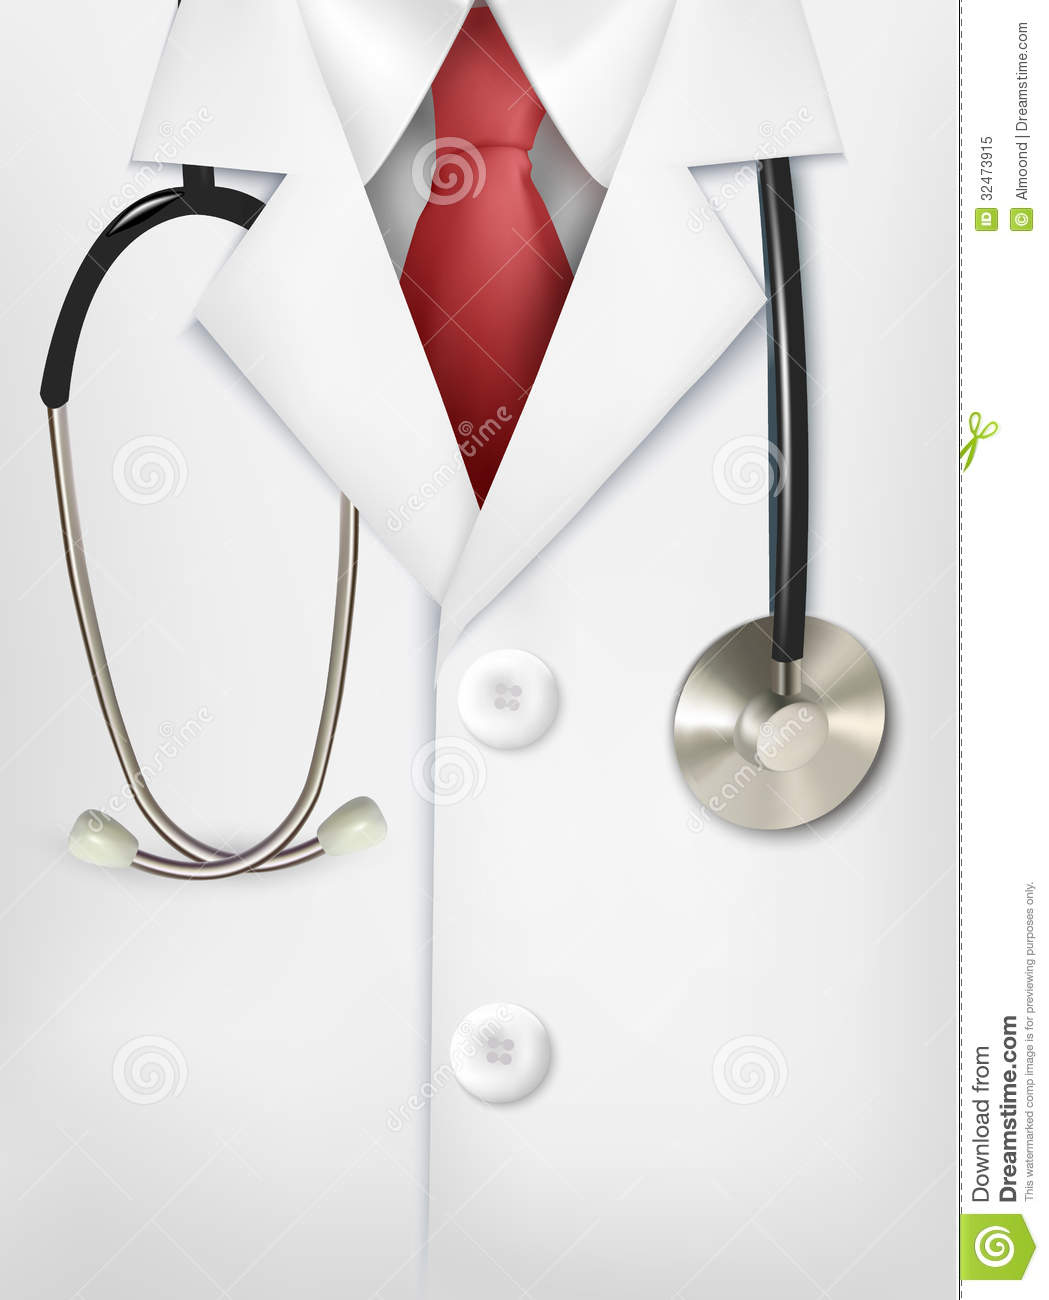 Close up of a doctors lab white coat and stethosco royalty free stock